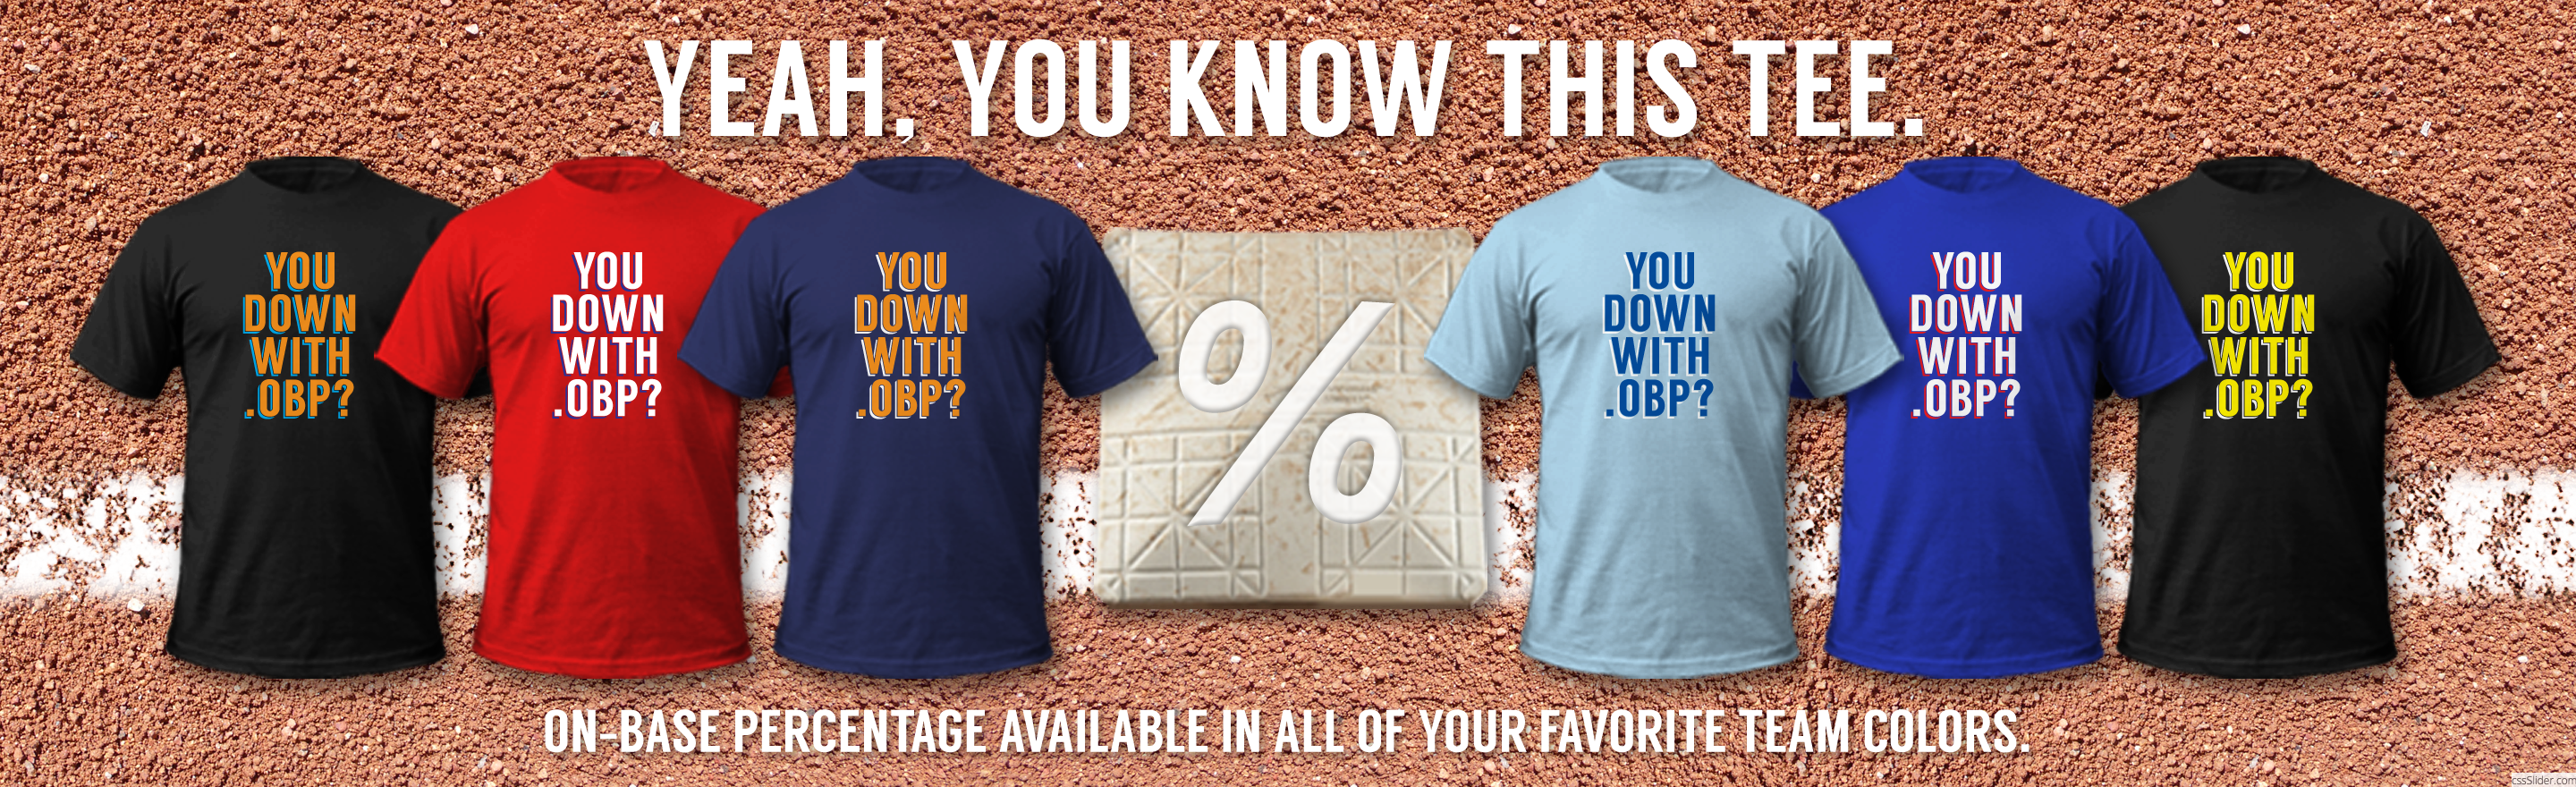 OBP - Fantasy Sports Apparel, designed by Matthew Lee Rosen.